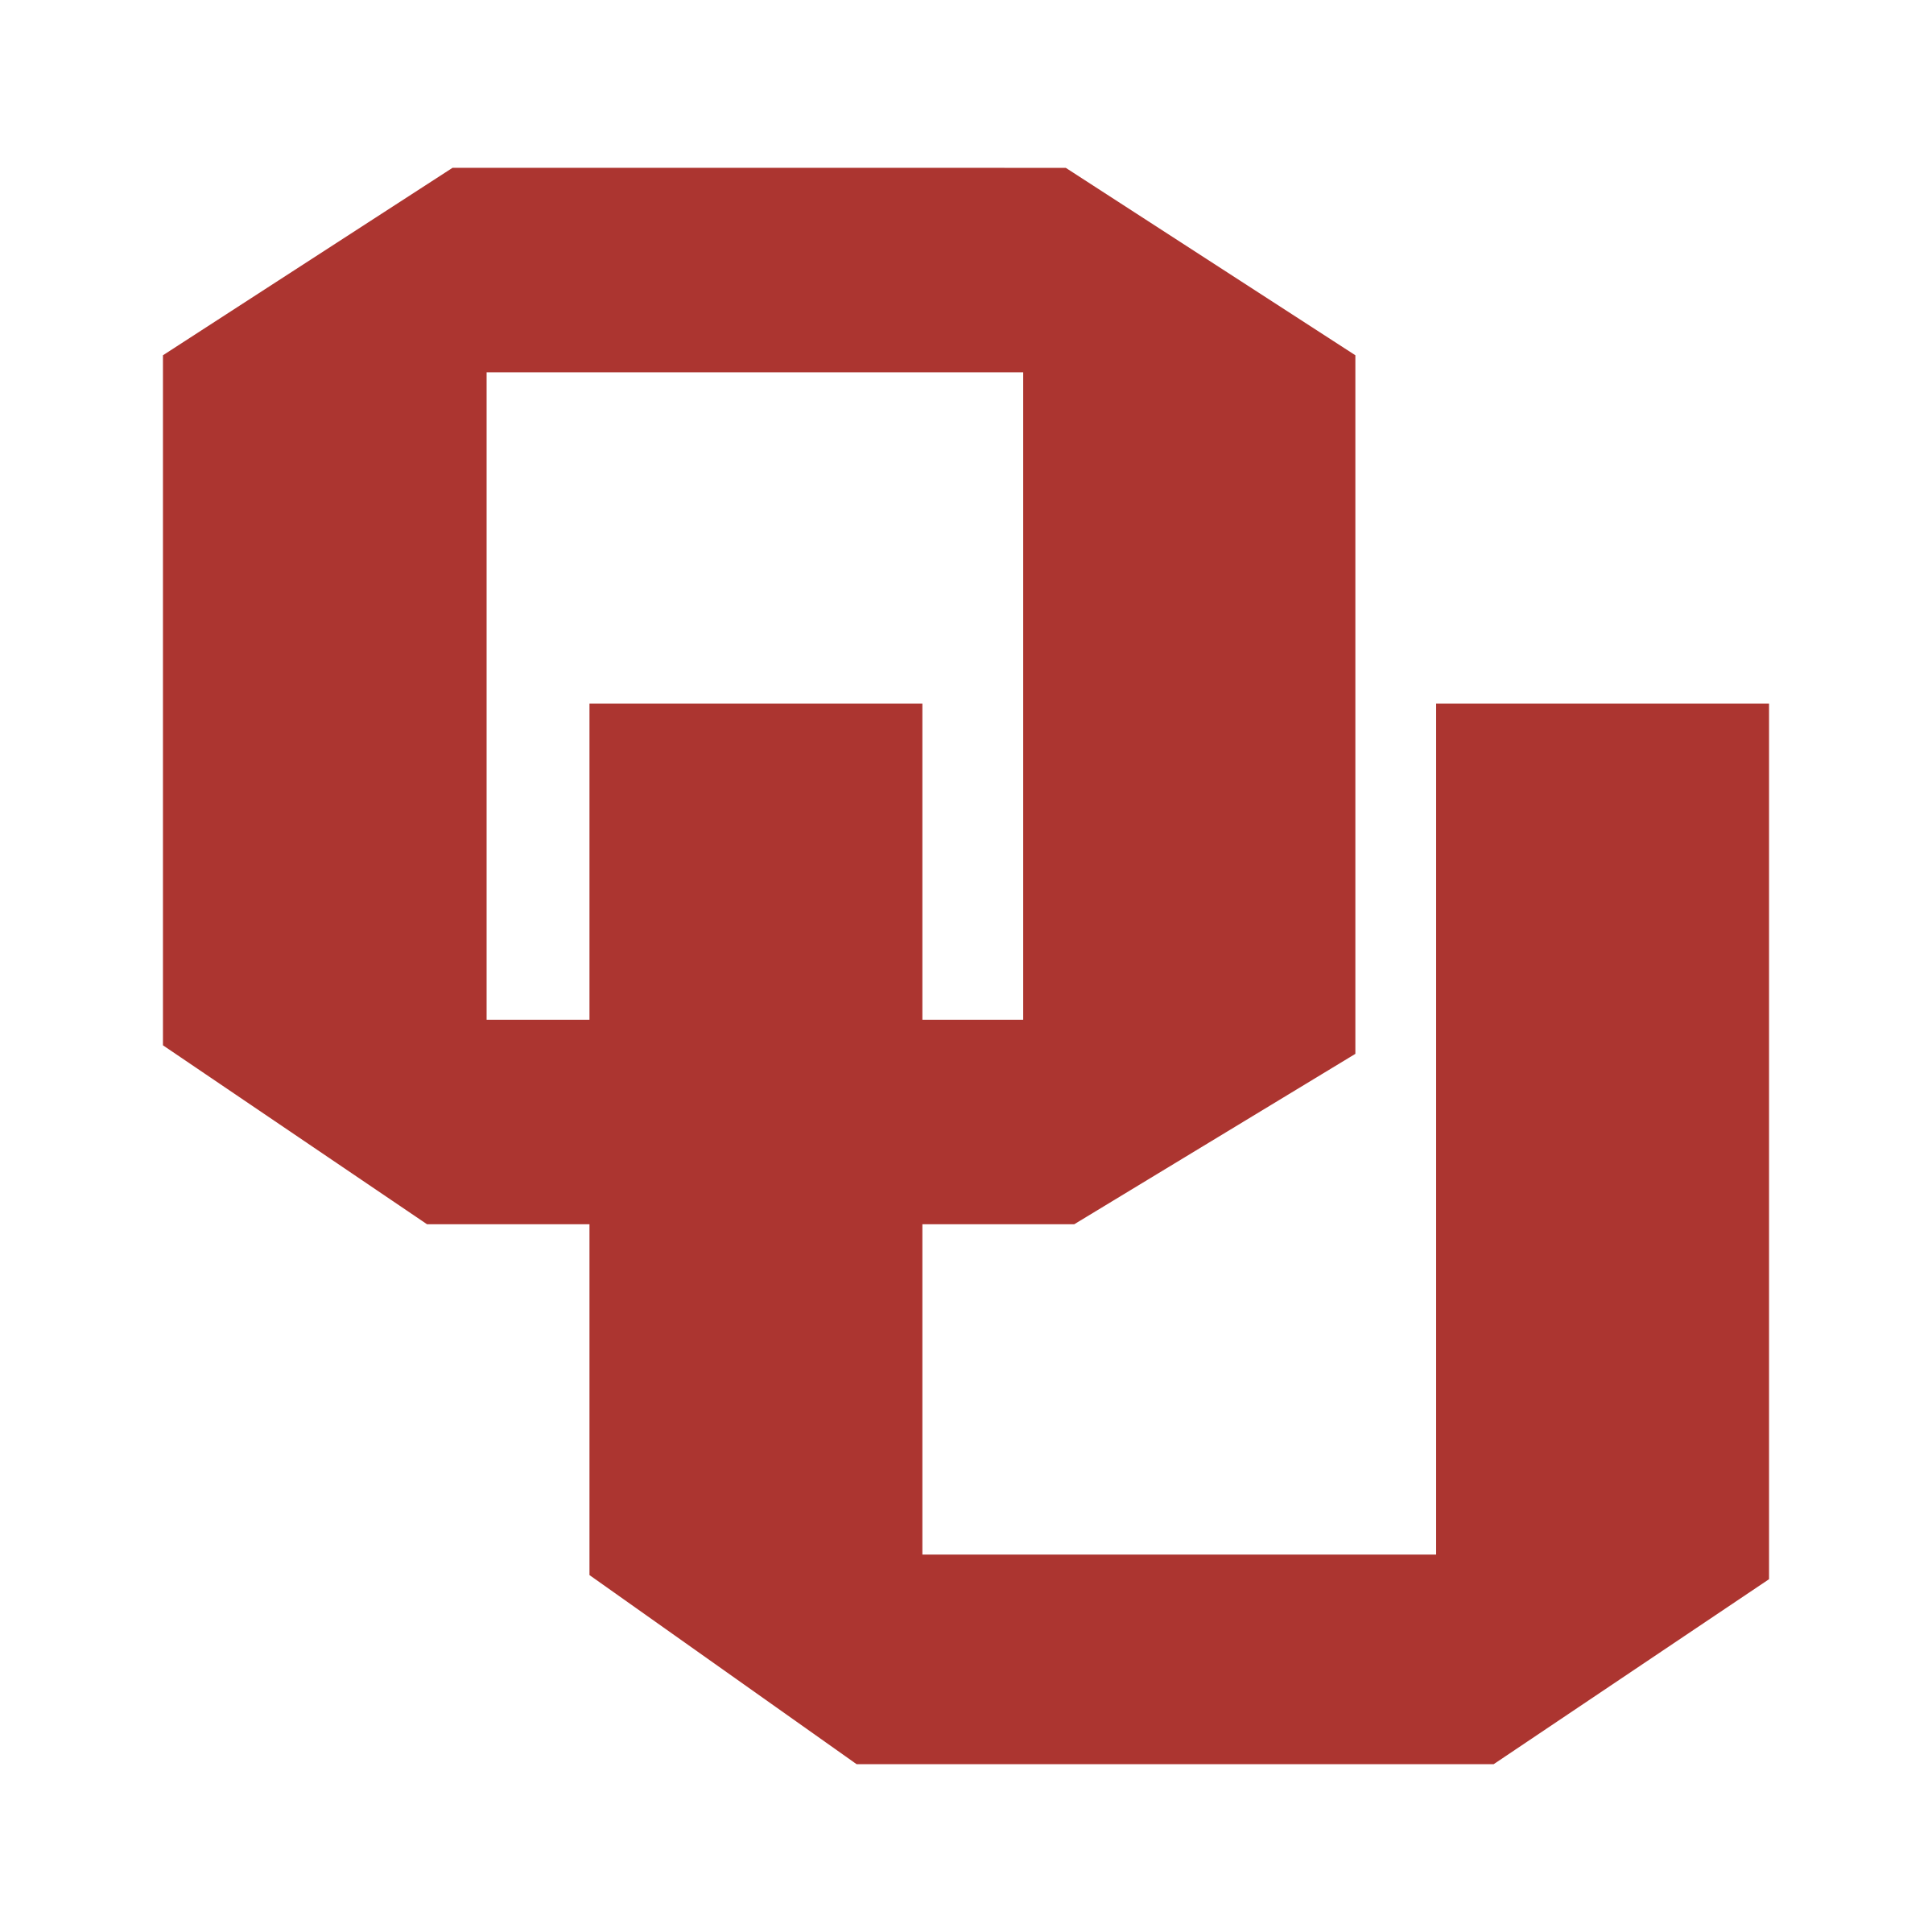 Oklahoma vector red. Sooners logo png transparent